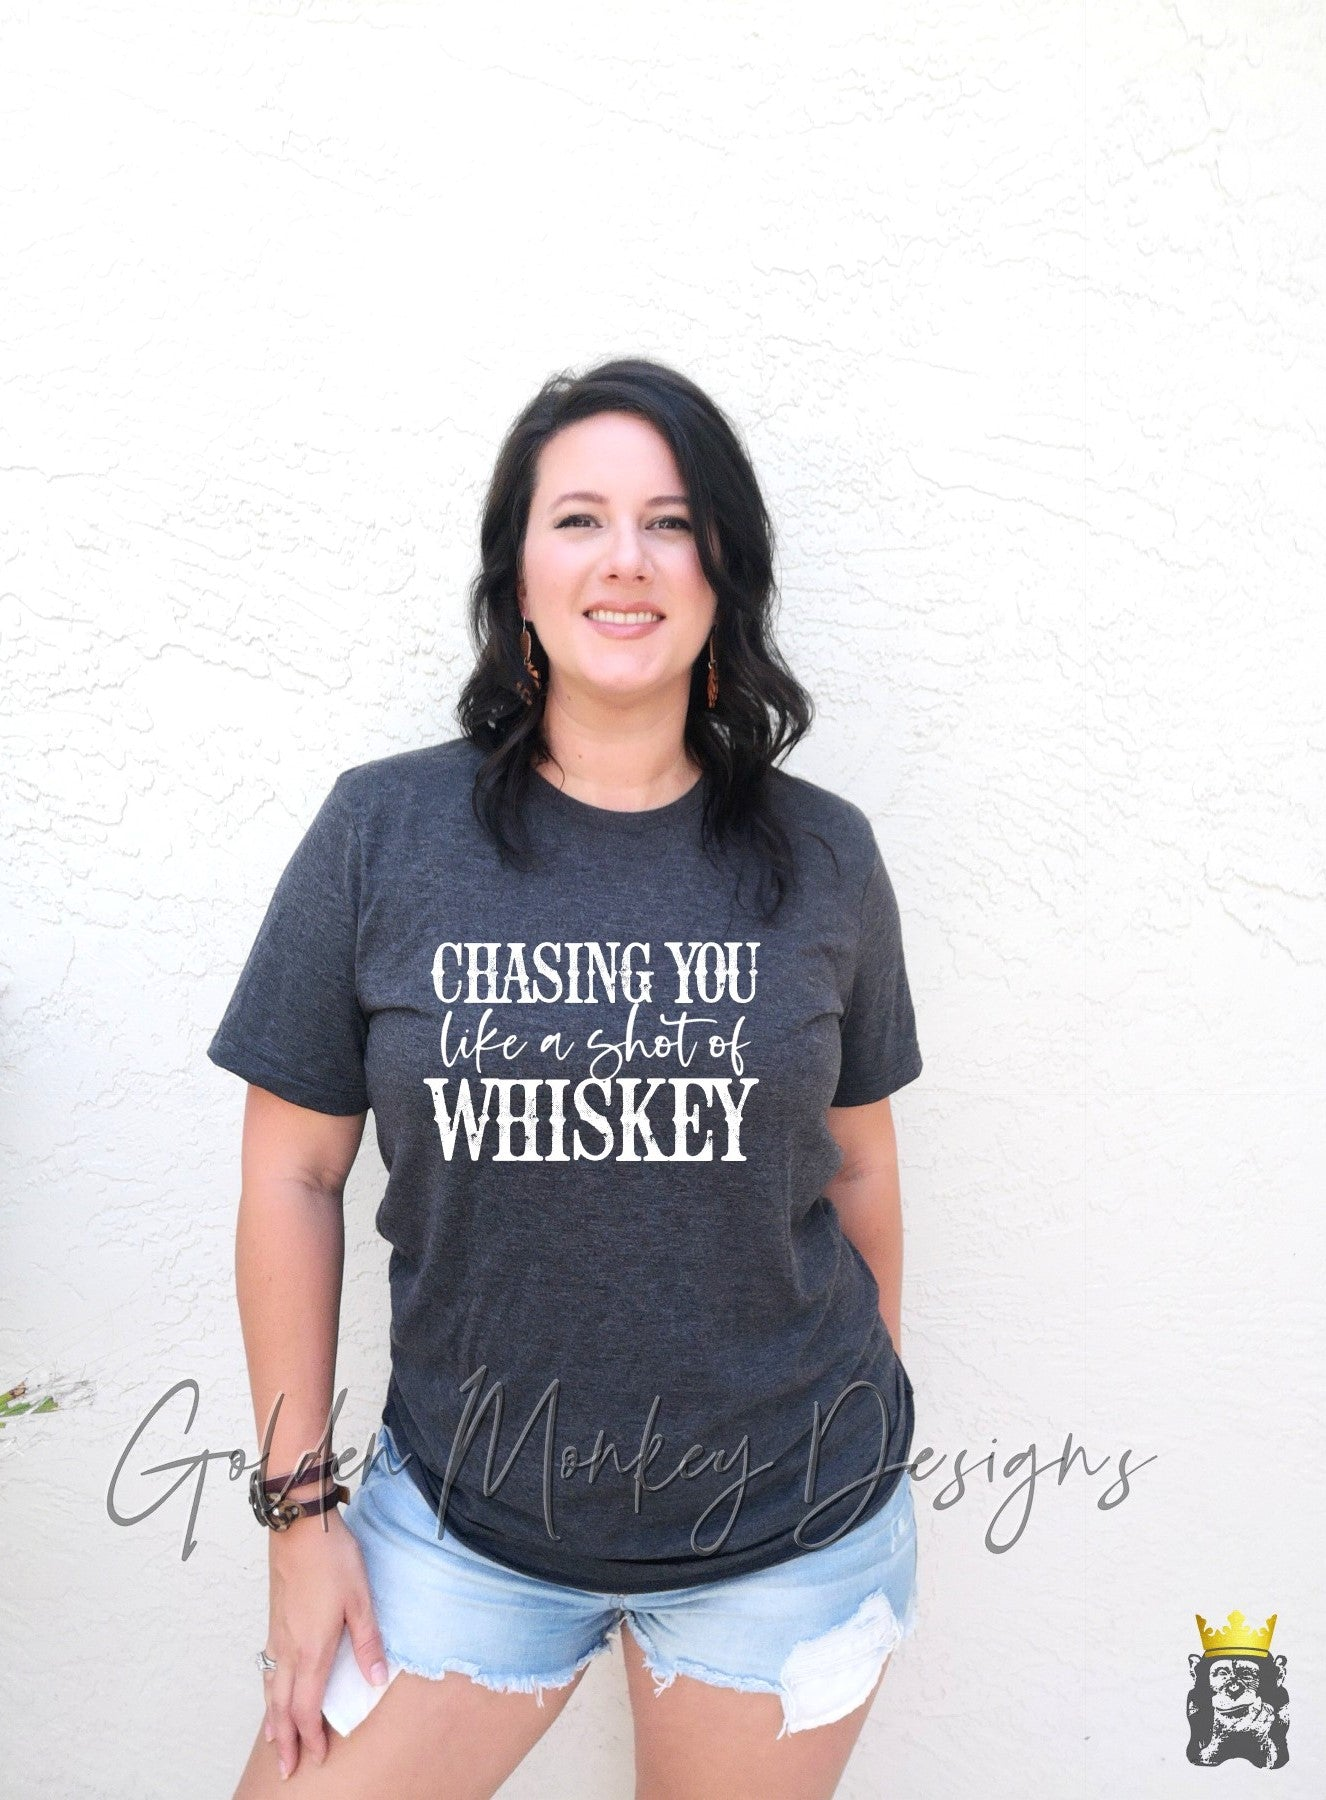 Chasing You Like a Shot of Whiskey